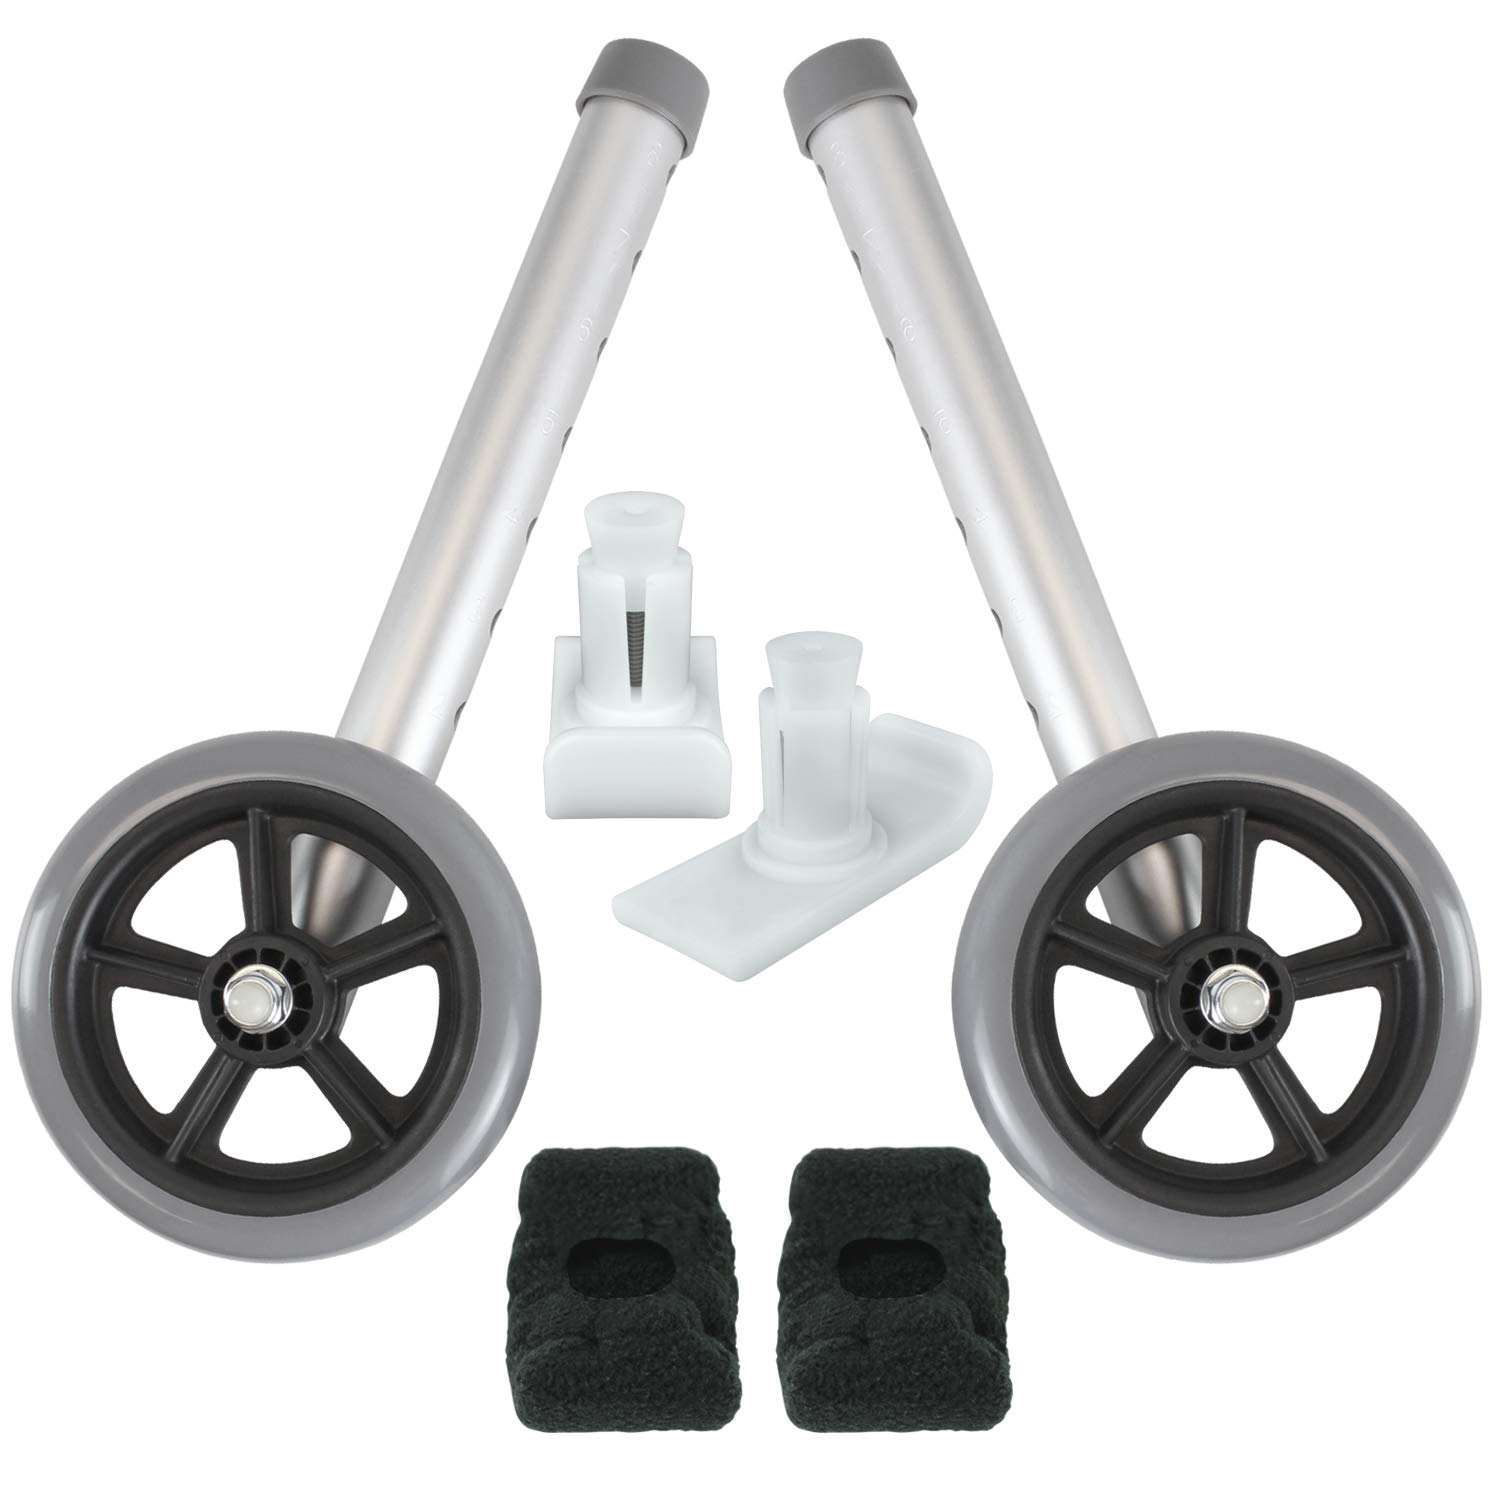 Vive Walker Wheels and Ski Glides - Replacement Feet - Accessories Parts Set for Folding Medical Walkers - Universal Front, Back Stability Safety Wheel - Includes 2 Glide Tips, Two 5 Inch Rubber Wheel by Vive